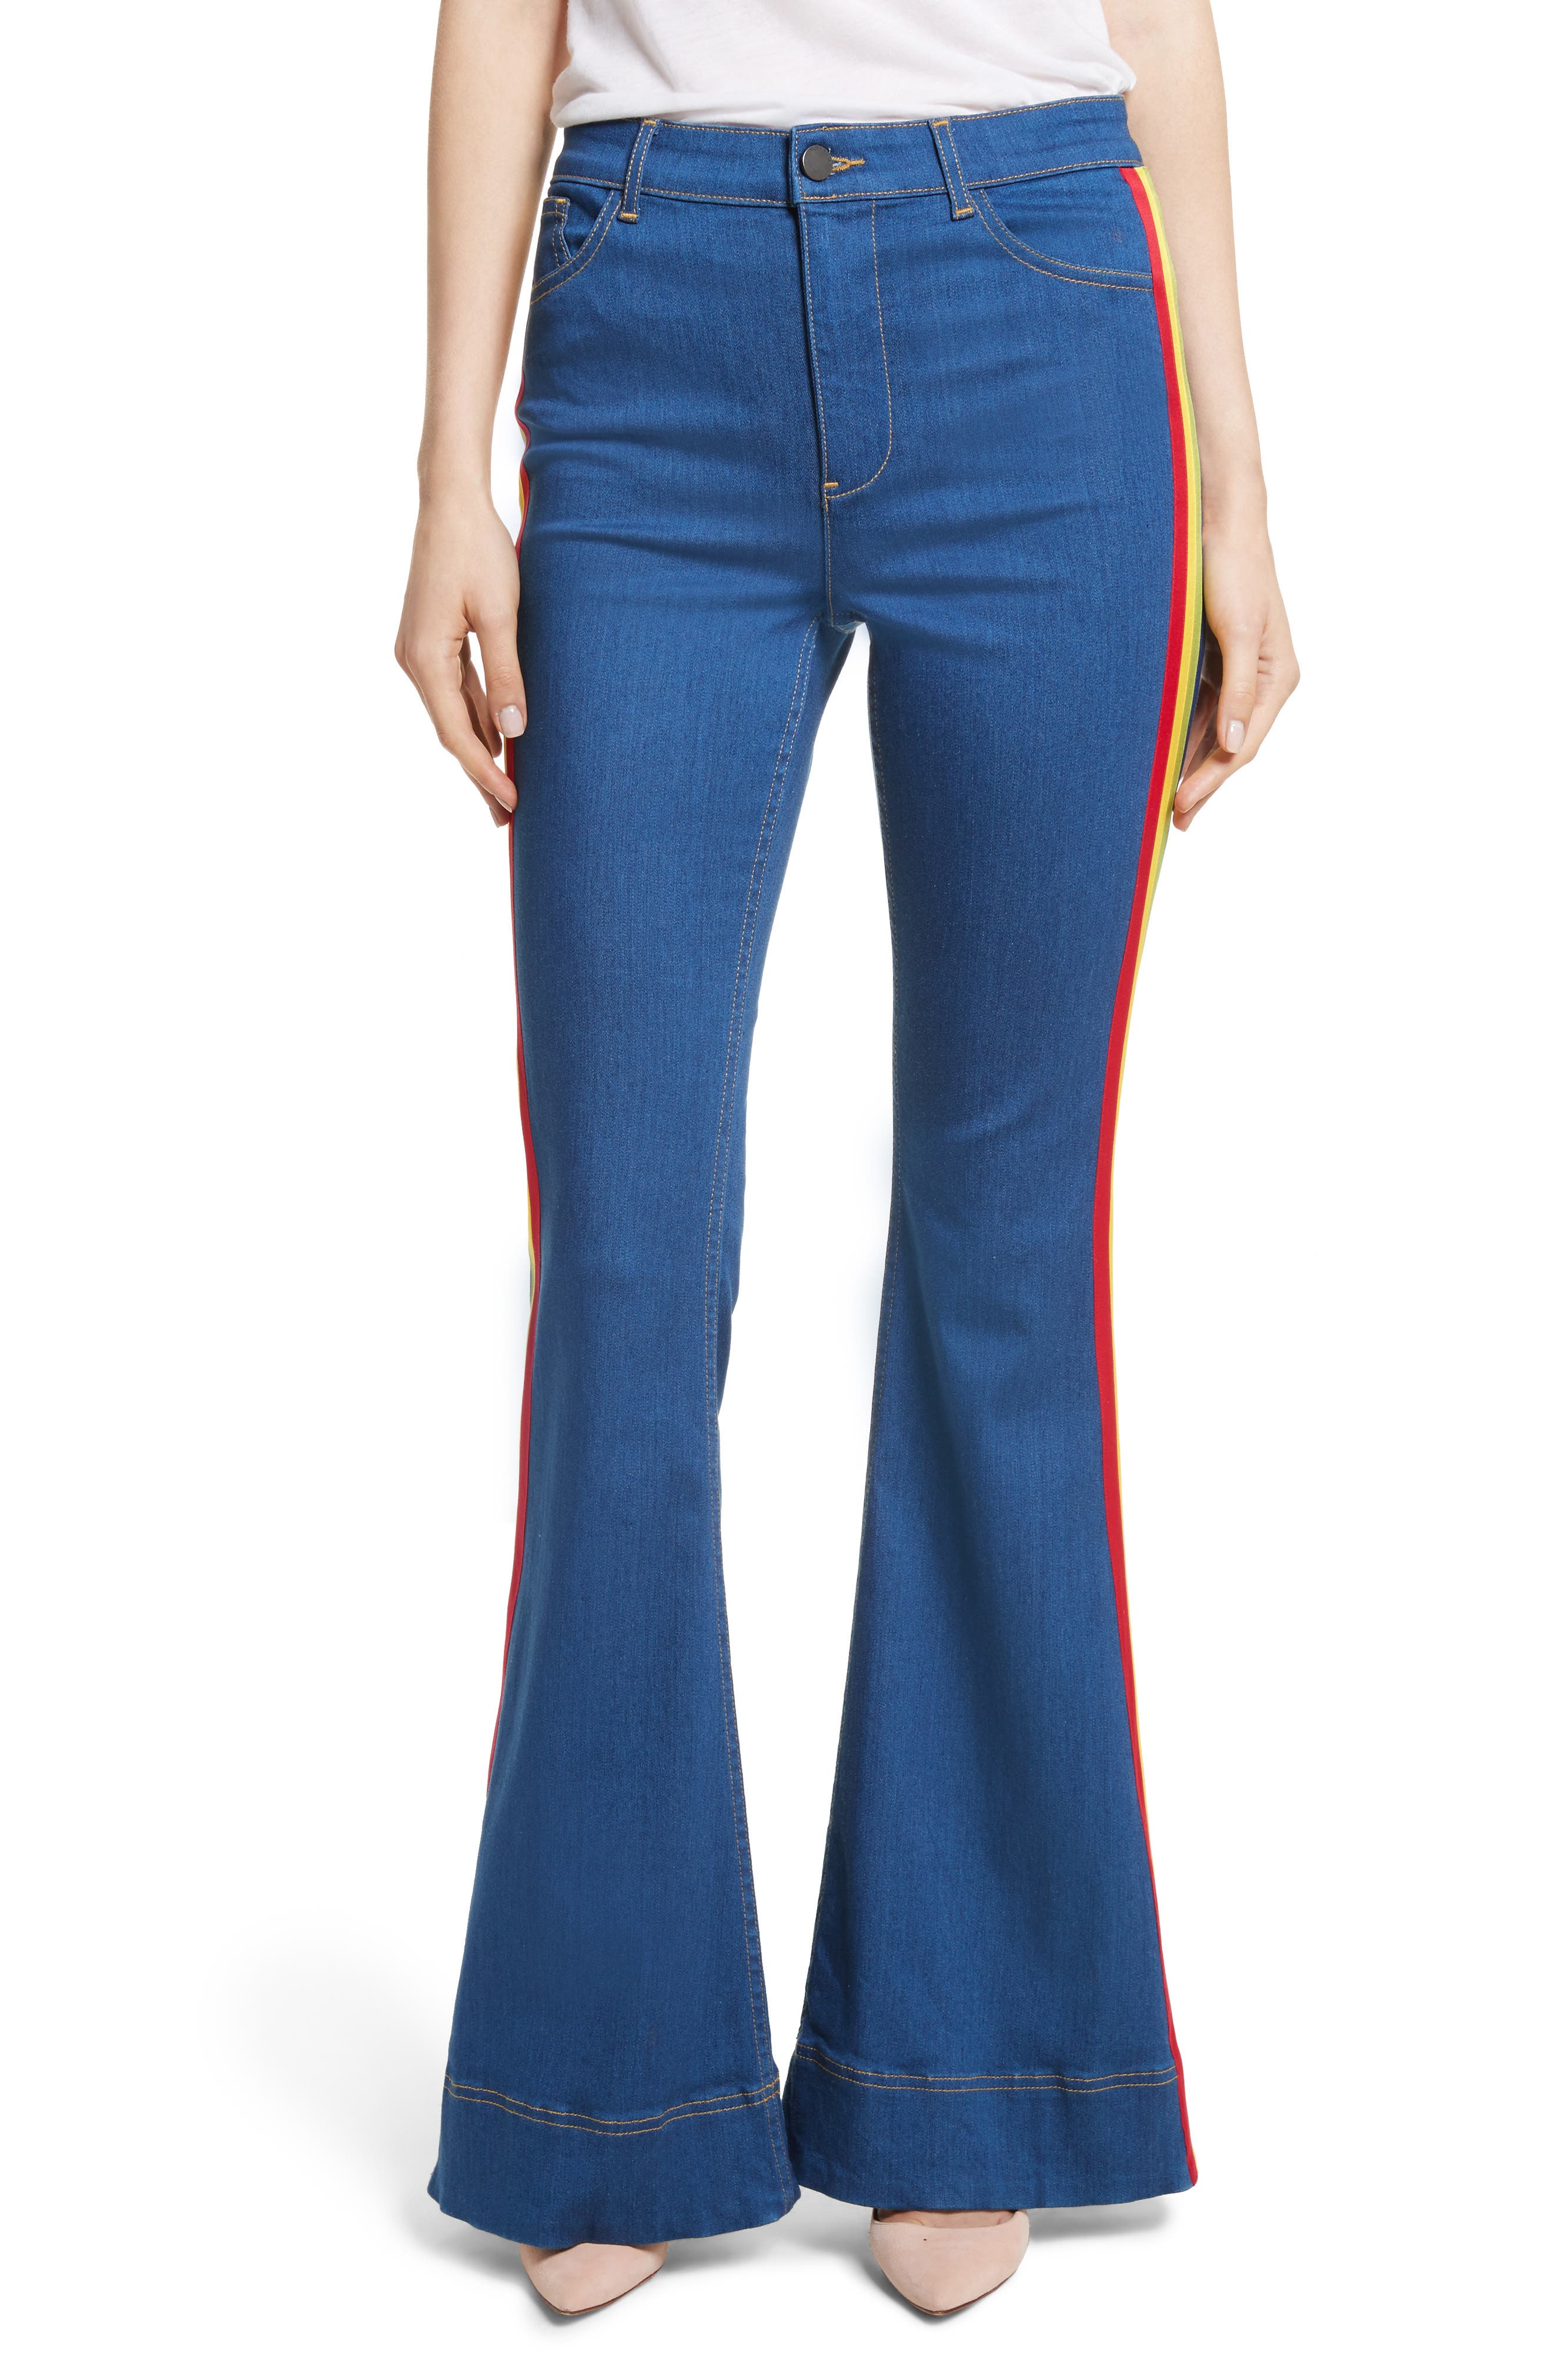 Kayleigh Bell Jeans,                             Main thumbnail 1, color,                             French Blue Multi